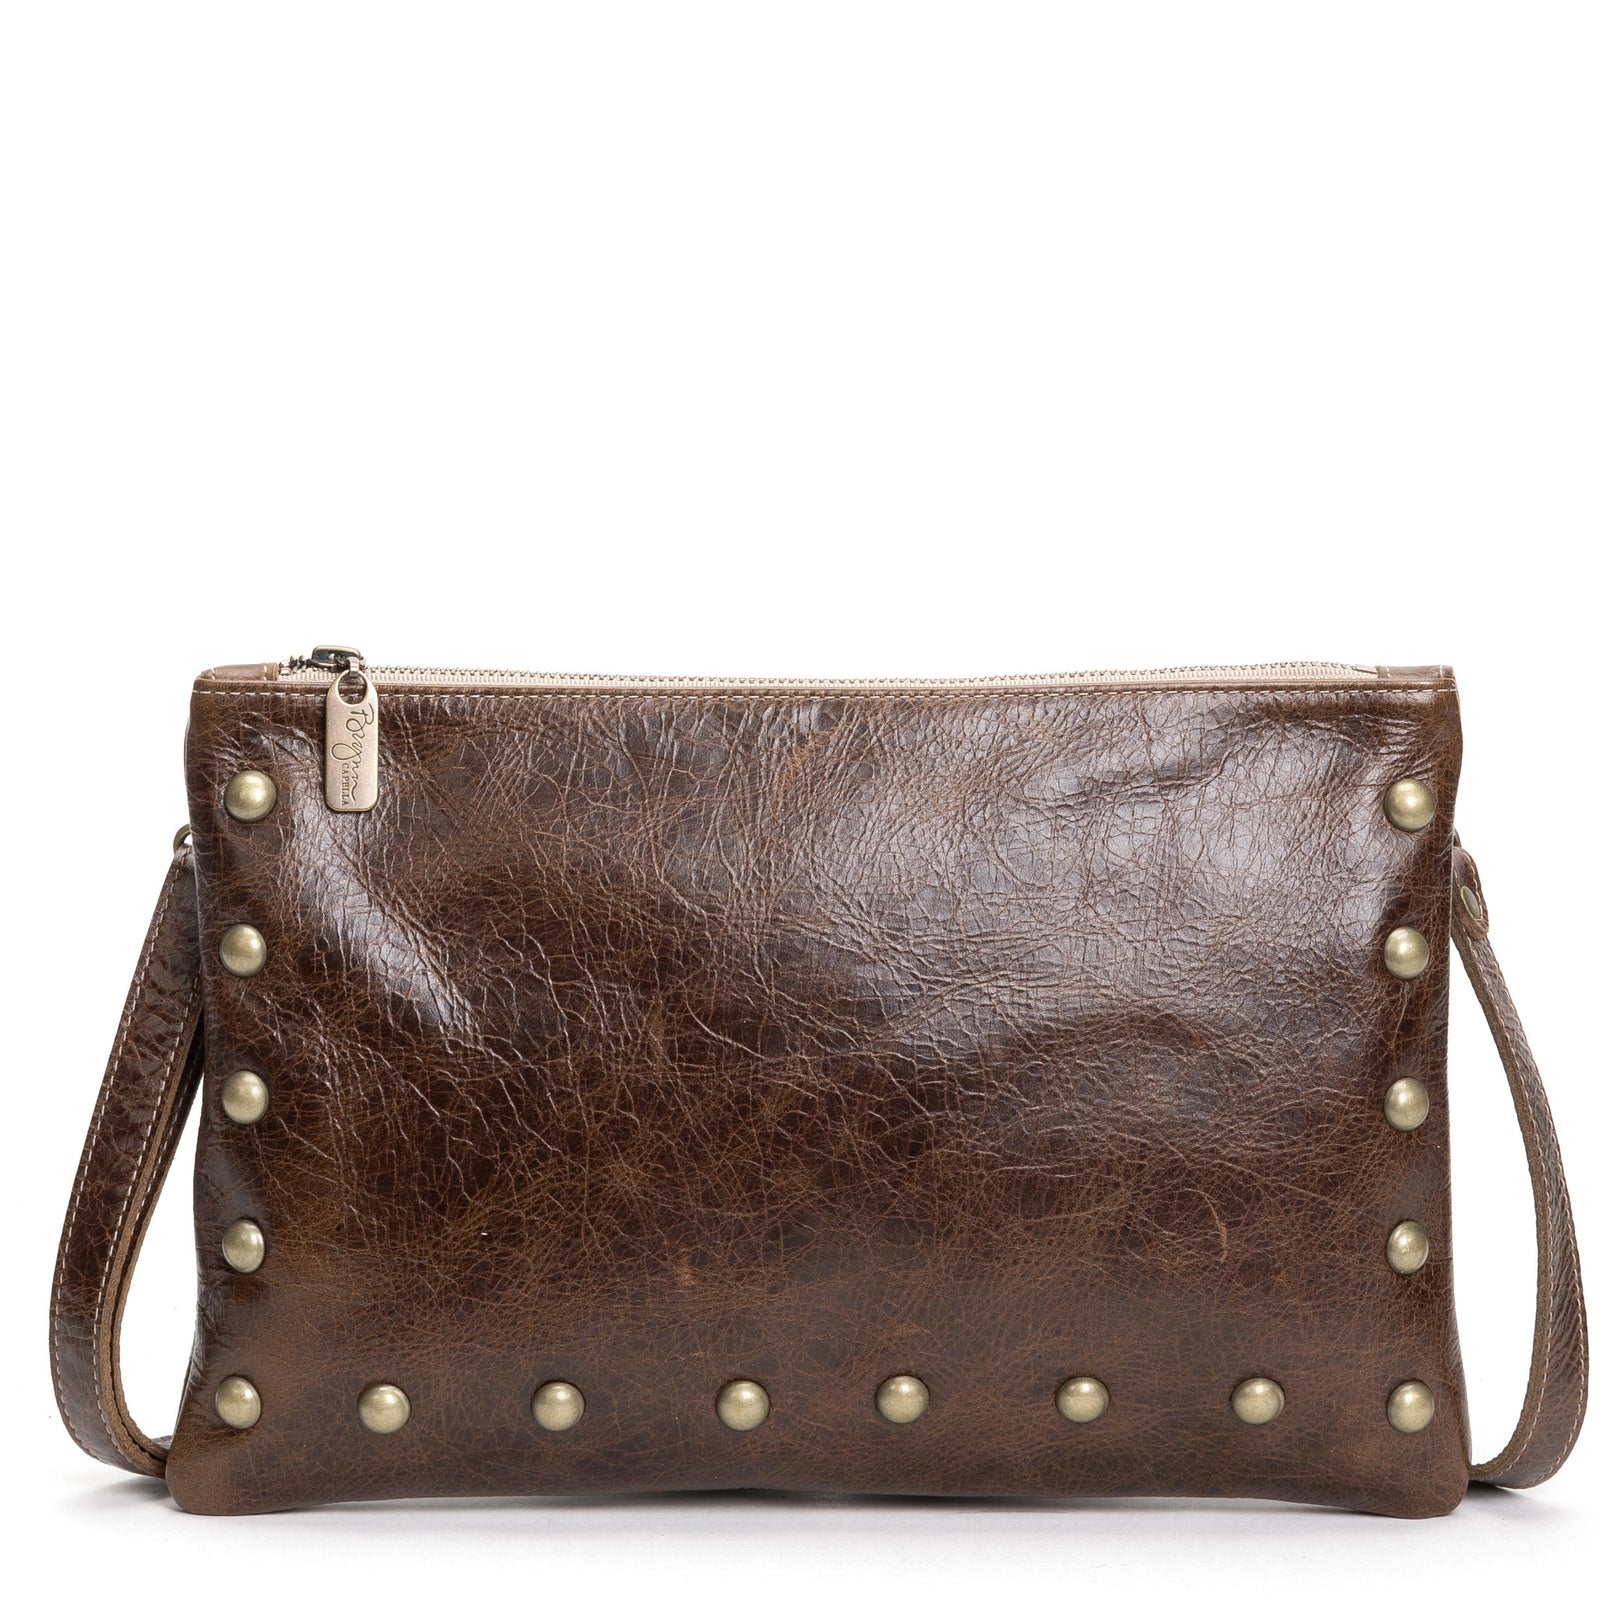 Nikki Clutch/Crossbody - Driftwood - Brynn Capella, Small Crossbody